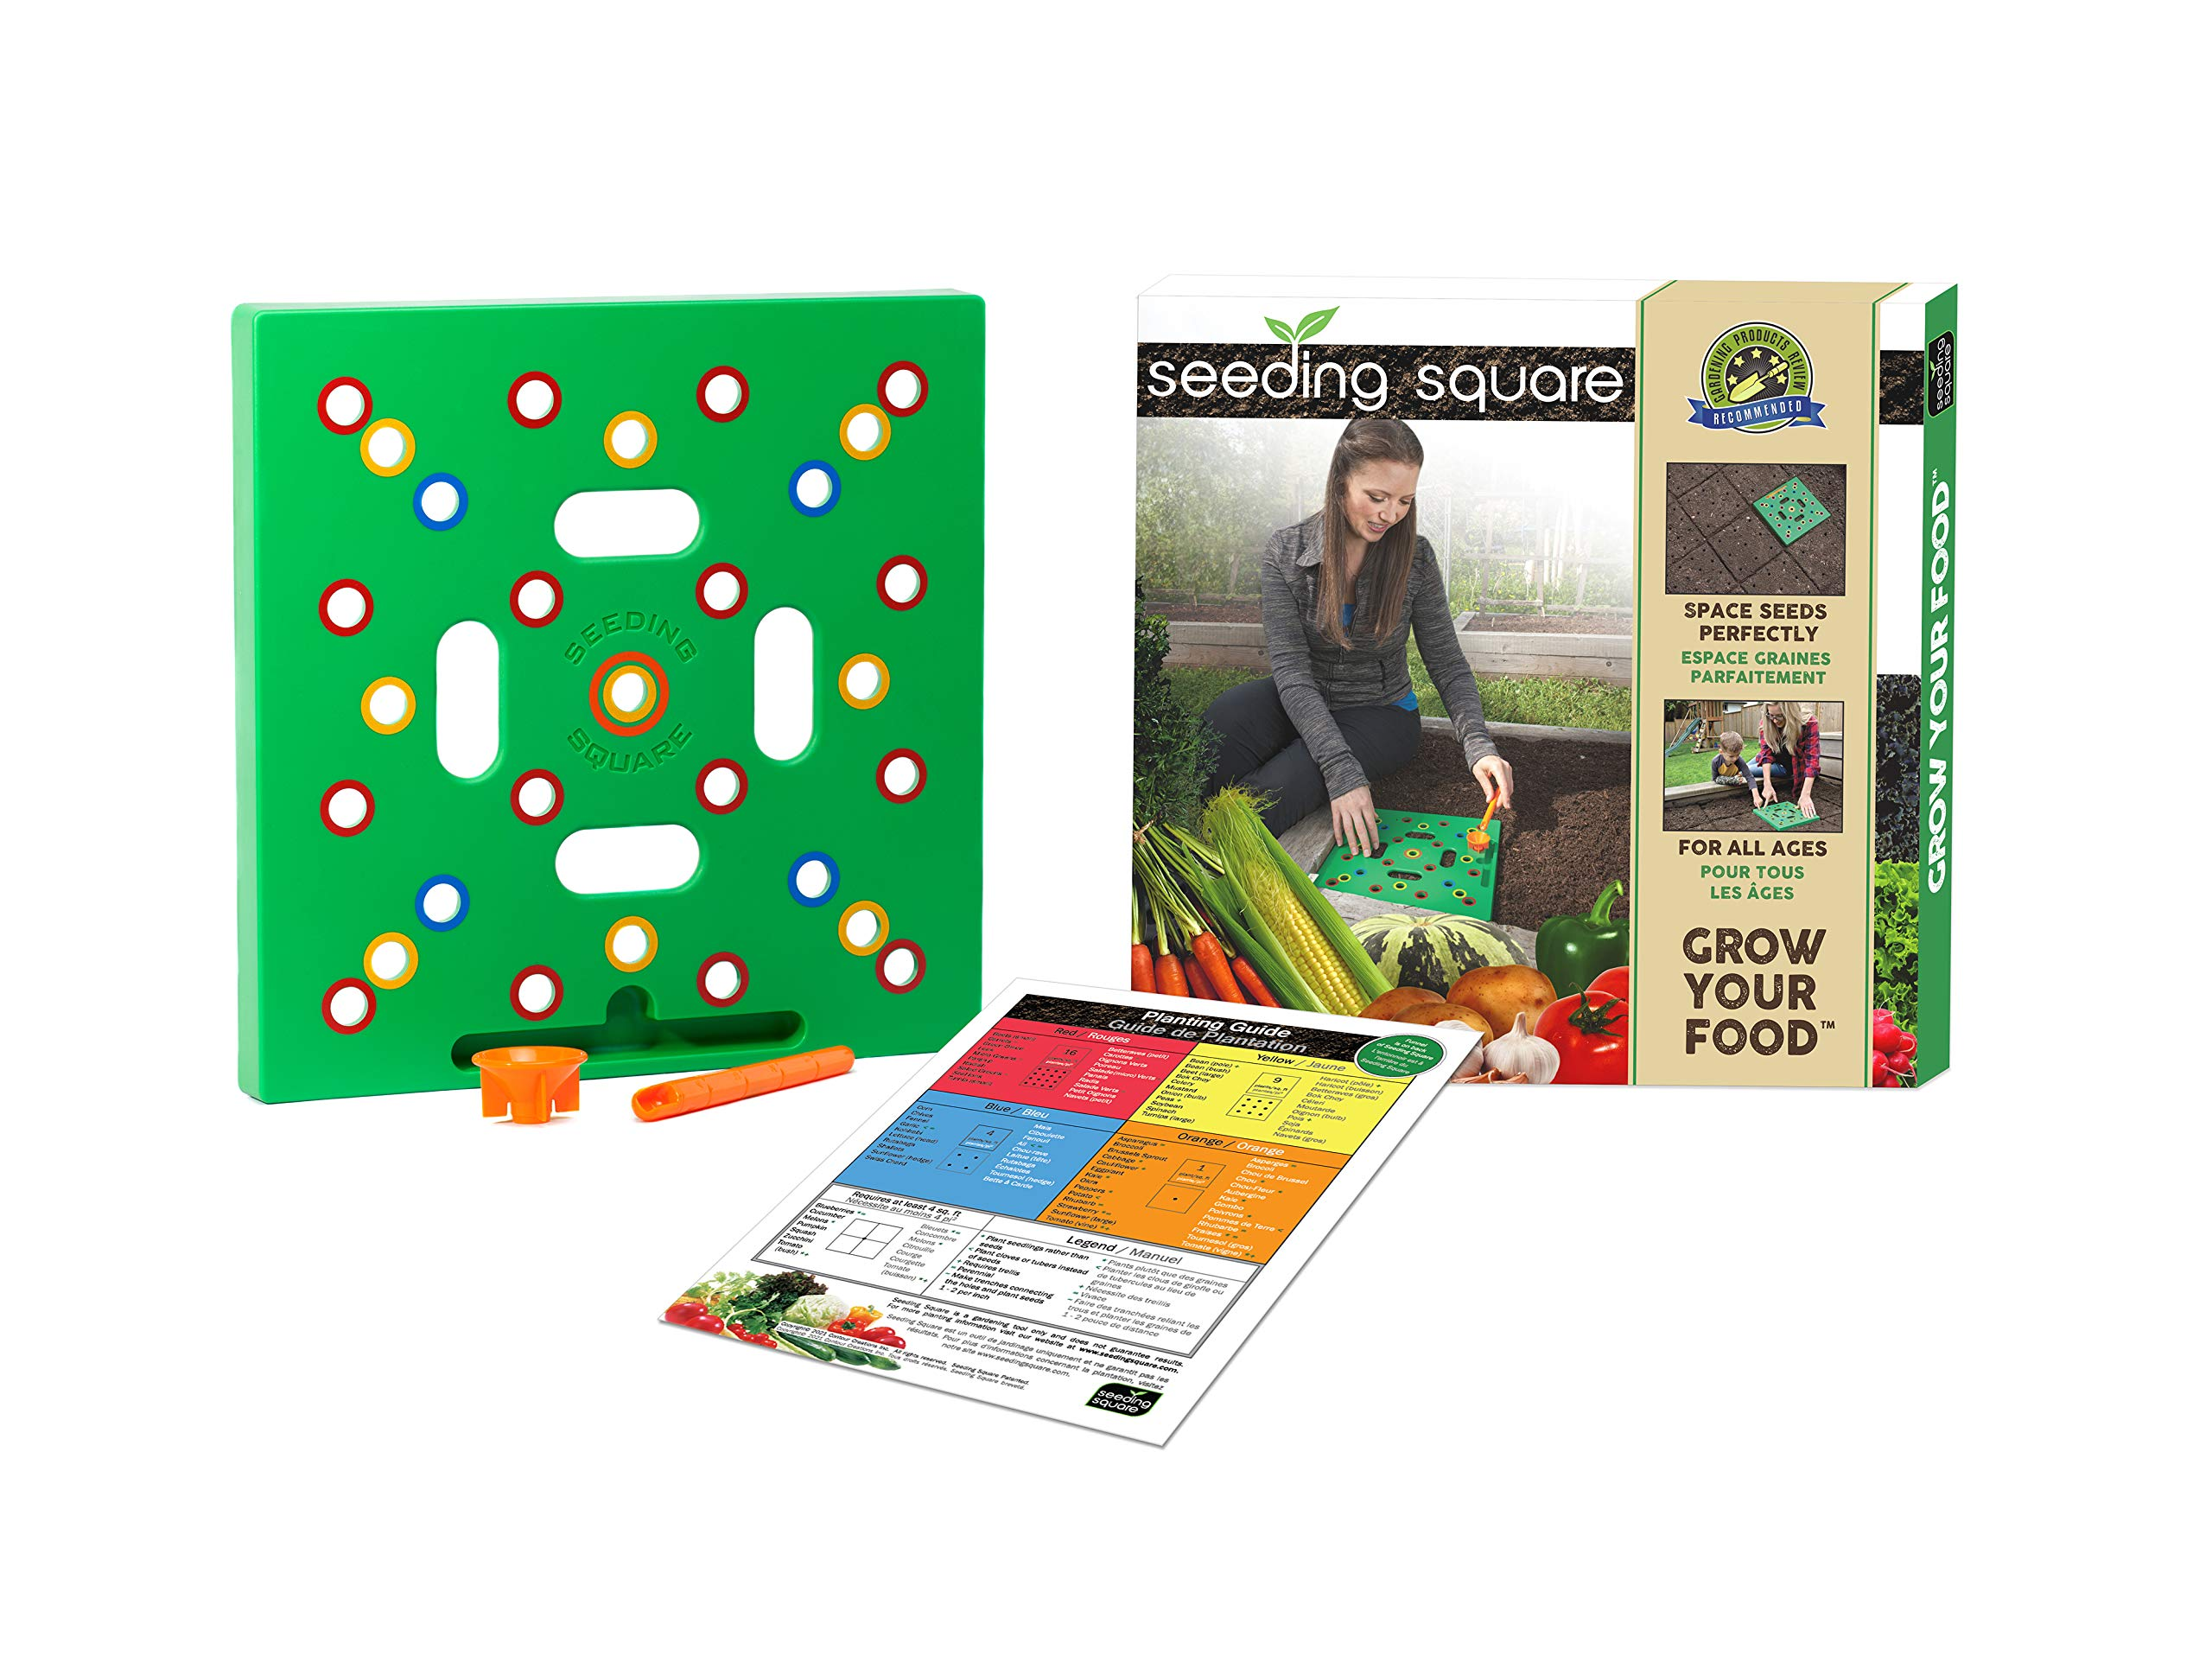 Seeding Square: A Seed-Sowing Template – Grow Perfectly Spaced Vegetables, Reduce Weeds, Conserve Water & Maximize Yield – Square-Foot-Gardening Seed and Seedling Spacer Tool with Dibble, Color-Coded Spacing Template & Funnel